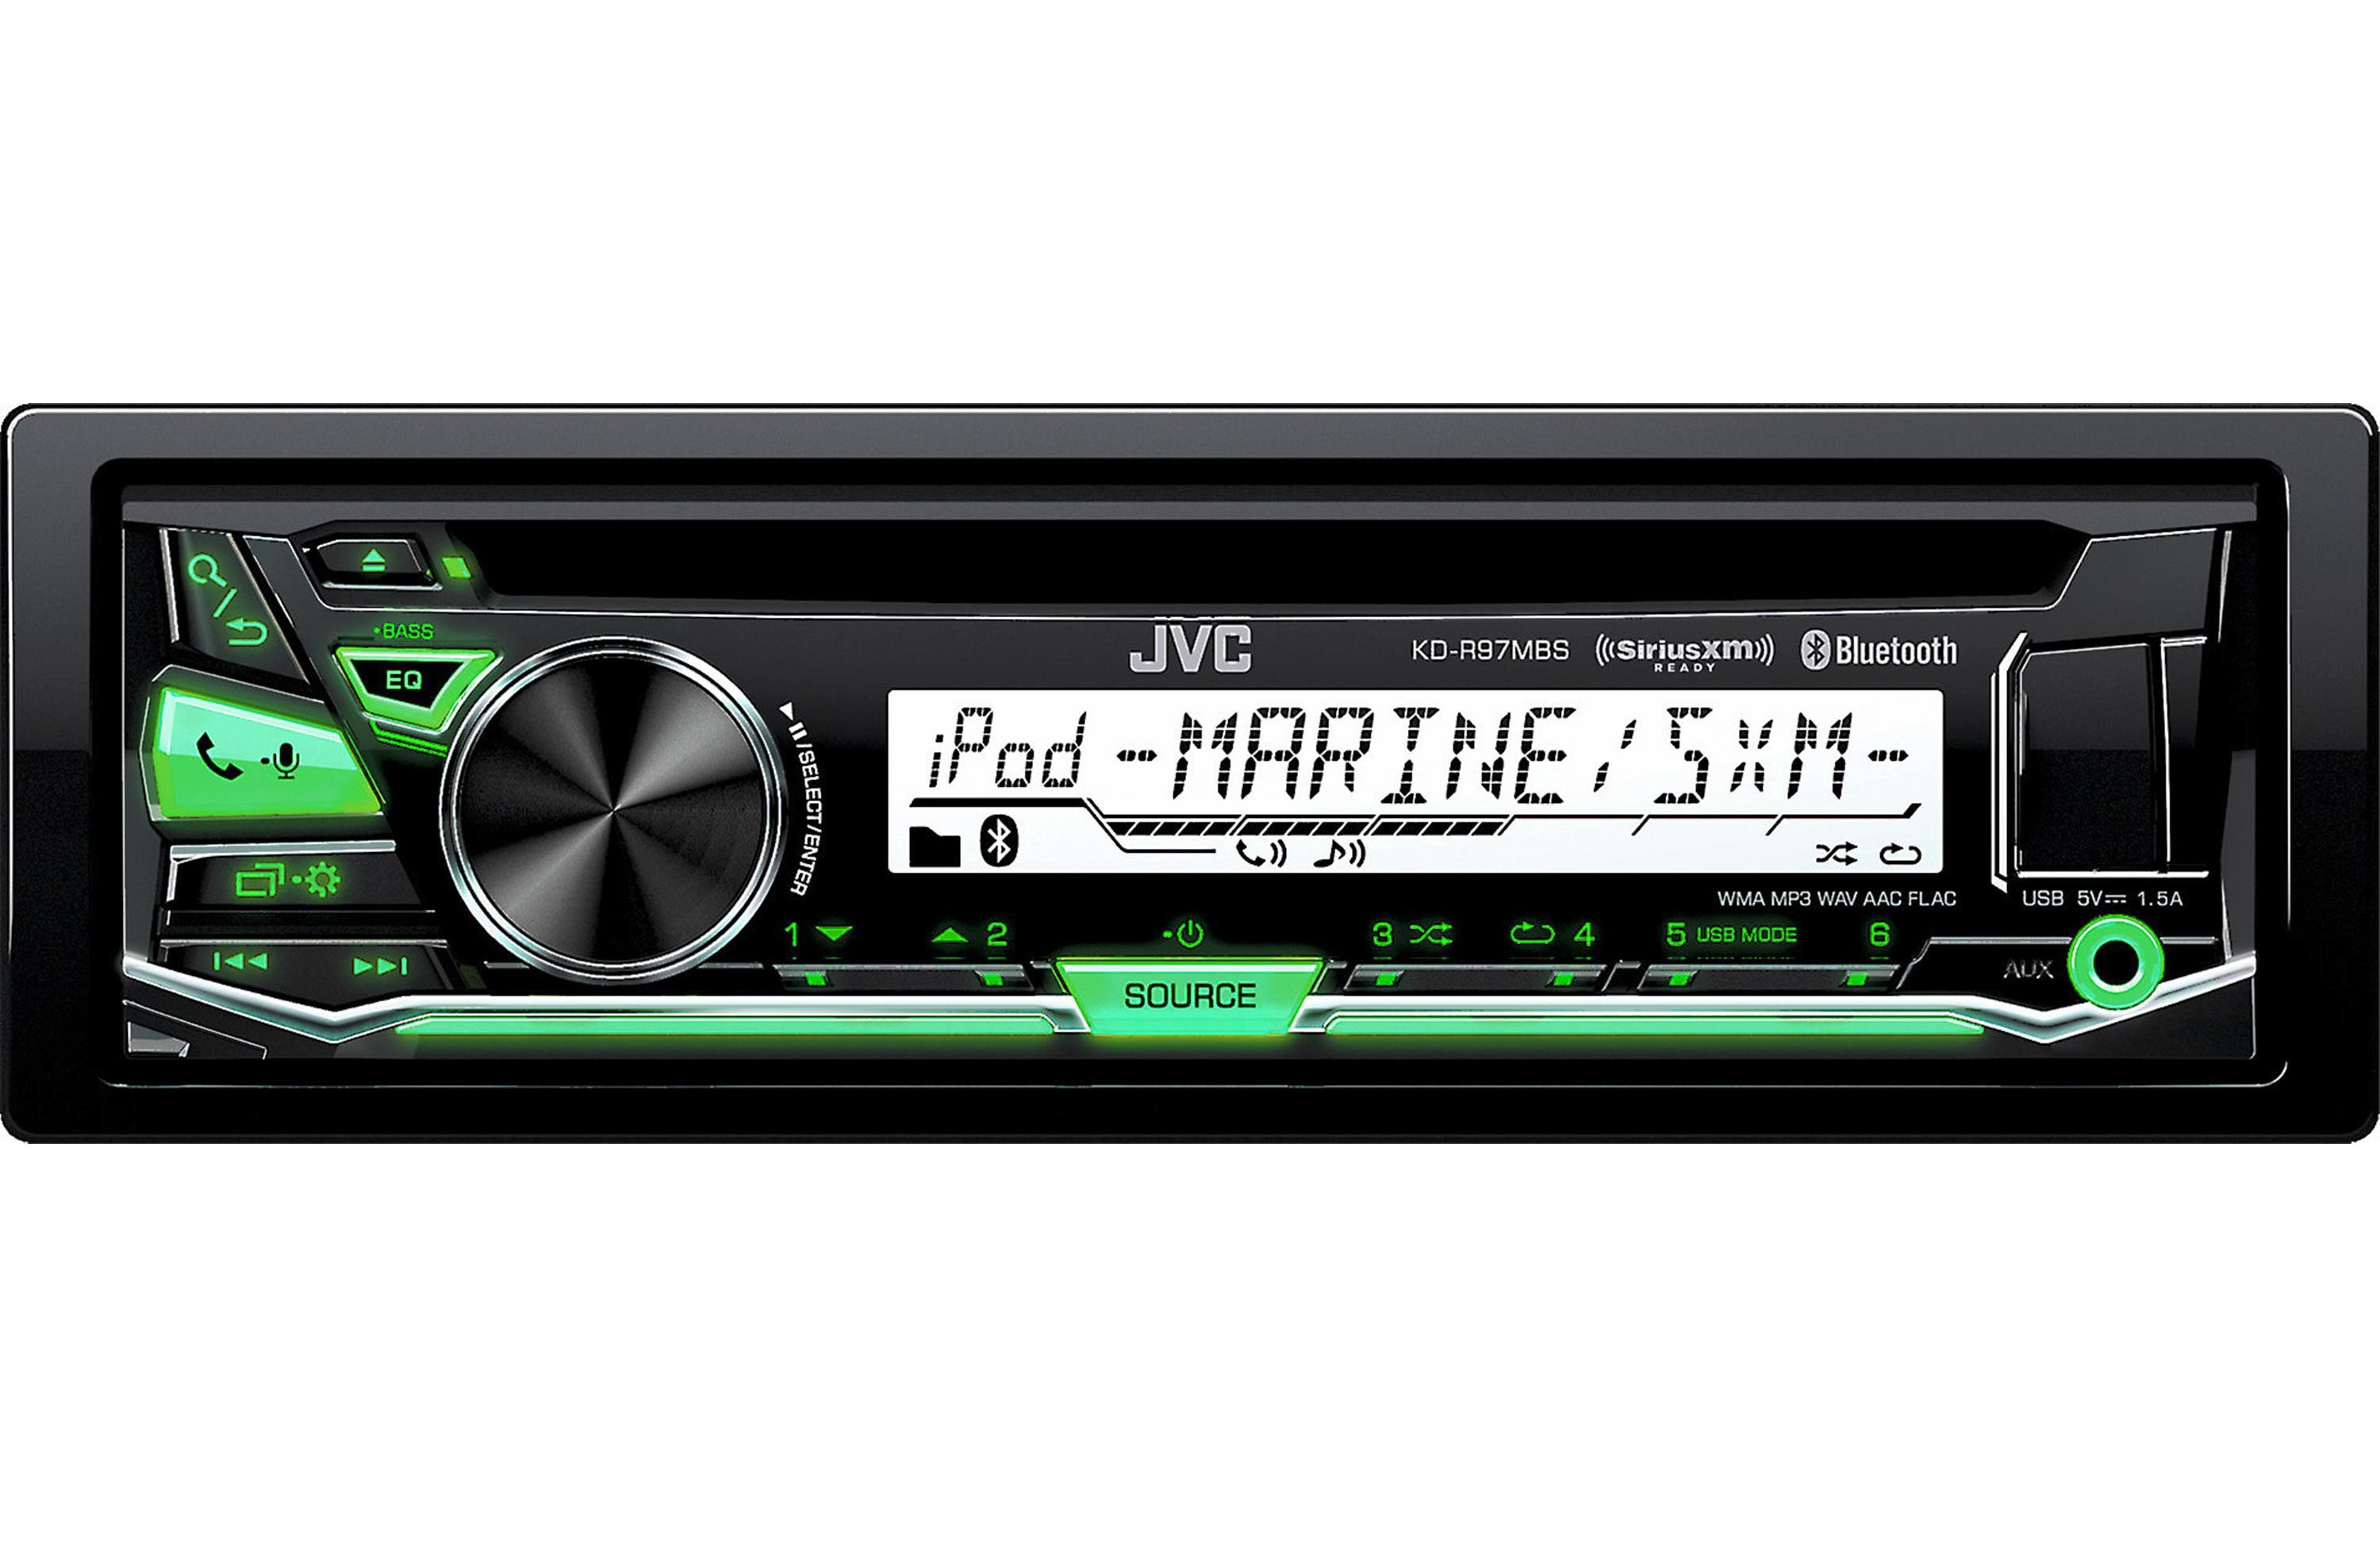 Get 2018s Best Deal On Jvc Kd R97mbs Marine Stereo Rock The Boat Player Circuit Board Pcb With Fm Radio View Mp3 Am Receiver Cd Usb Port Ipod Control Siriusxm Ready Bluetooth Pandora I Heart